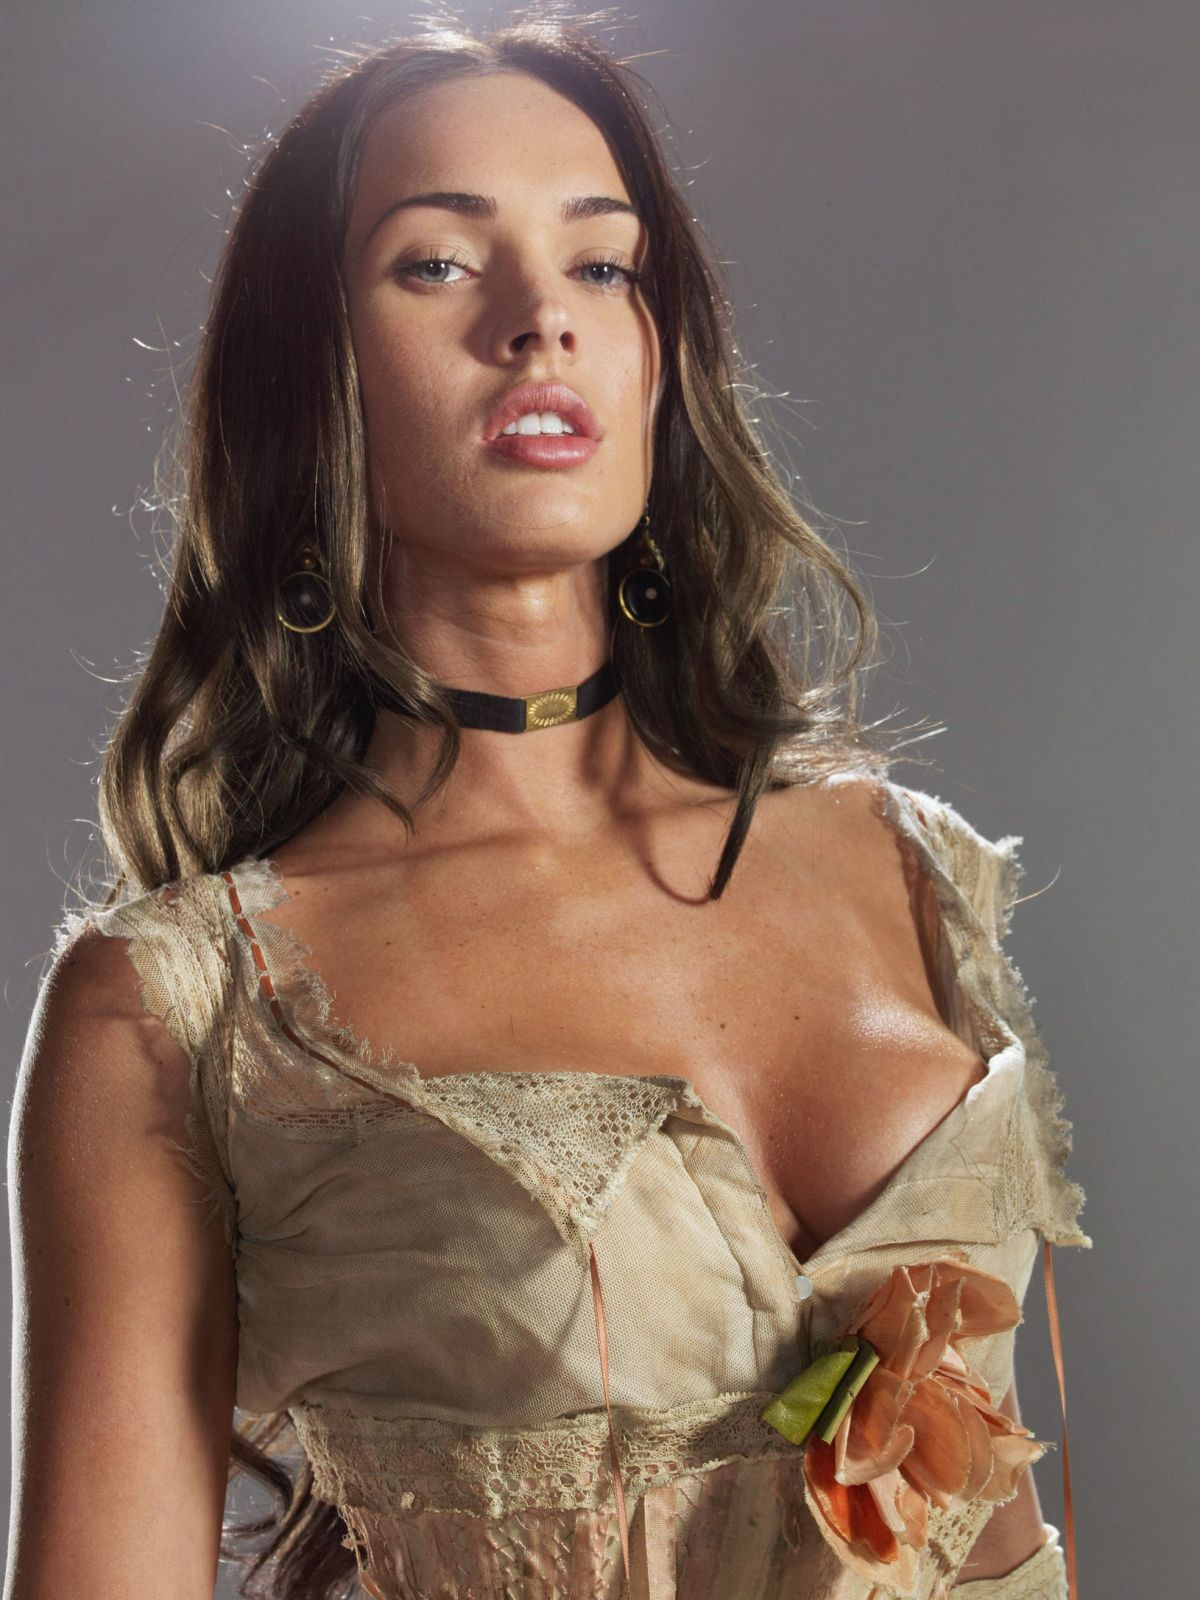 megan fox at jonah hex promo